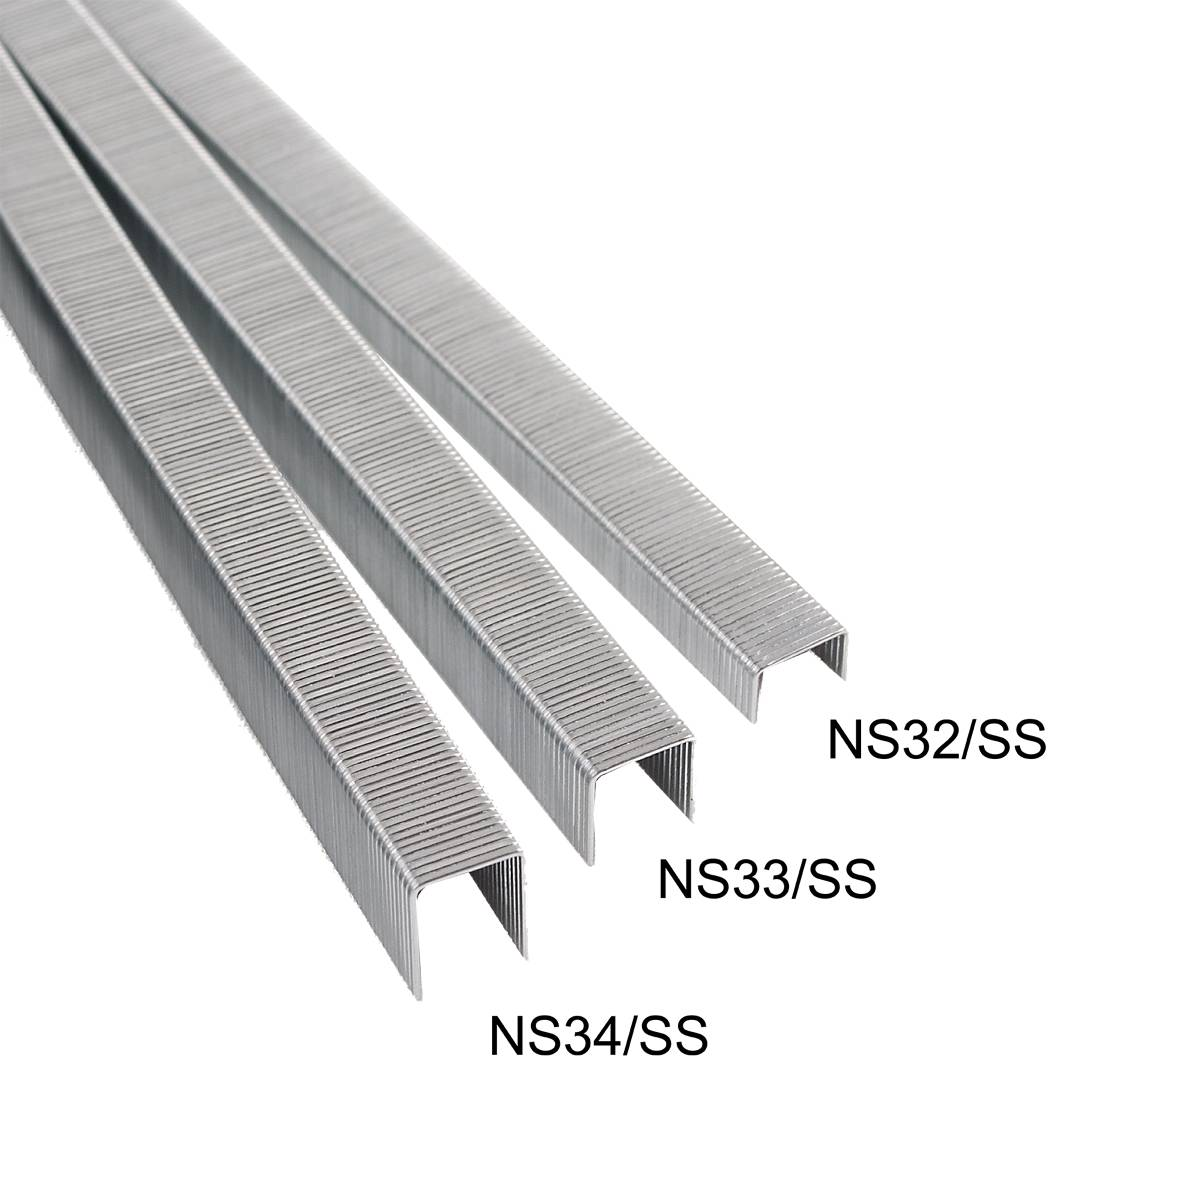 Stainless Steel Staples Marine Upholstery Outdoor Applications